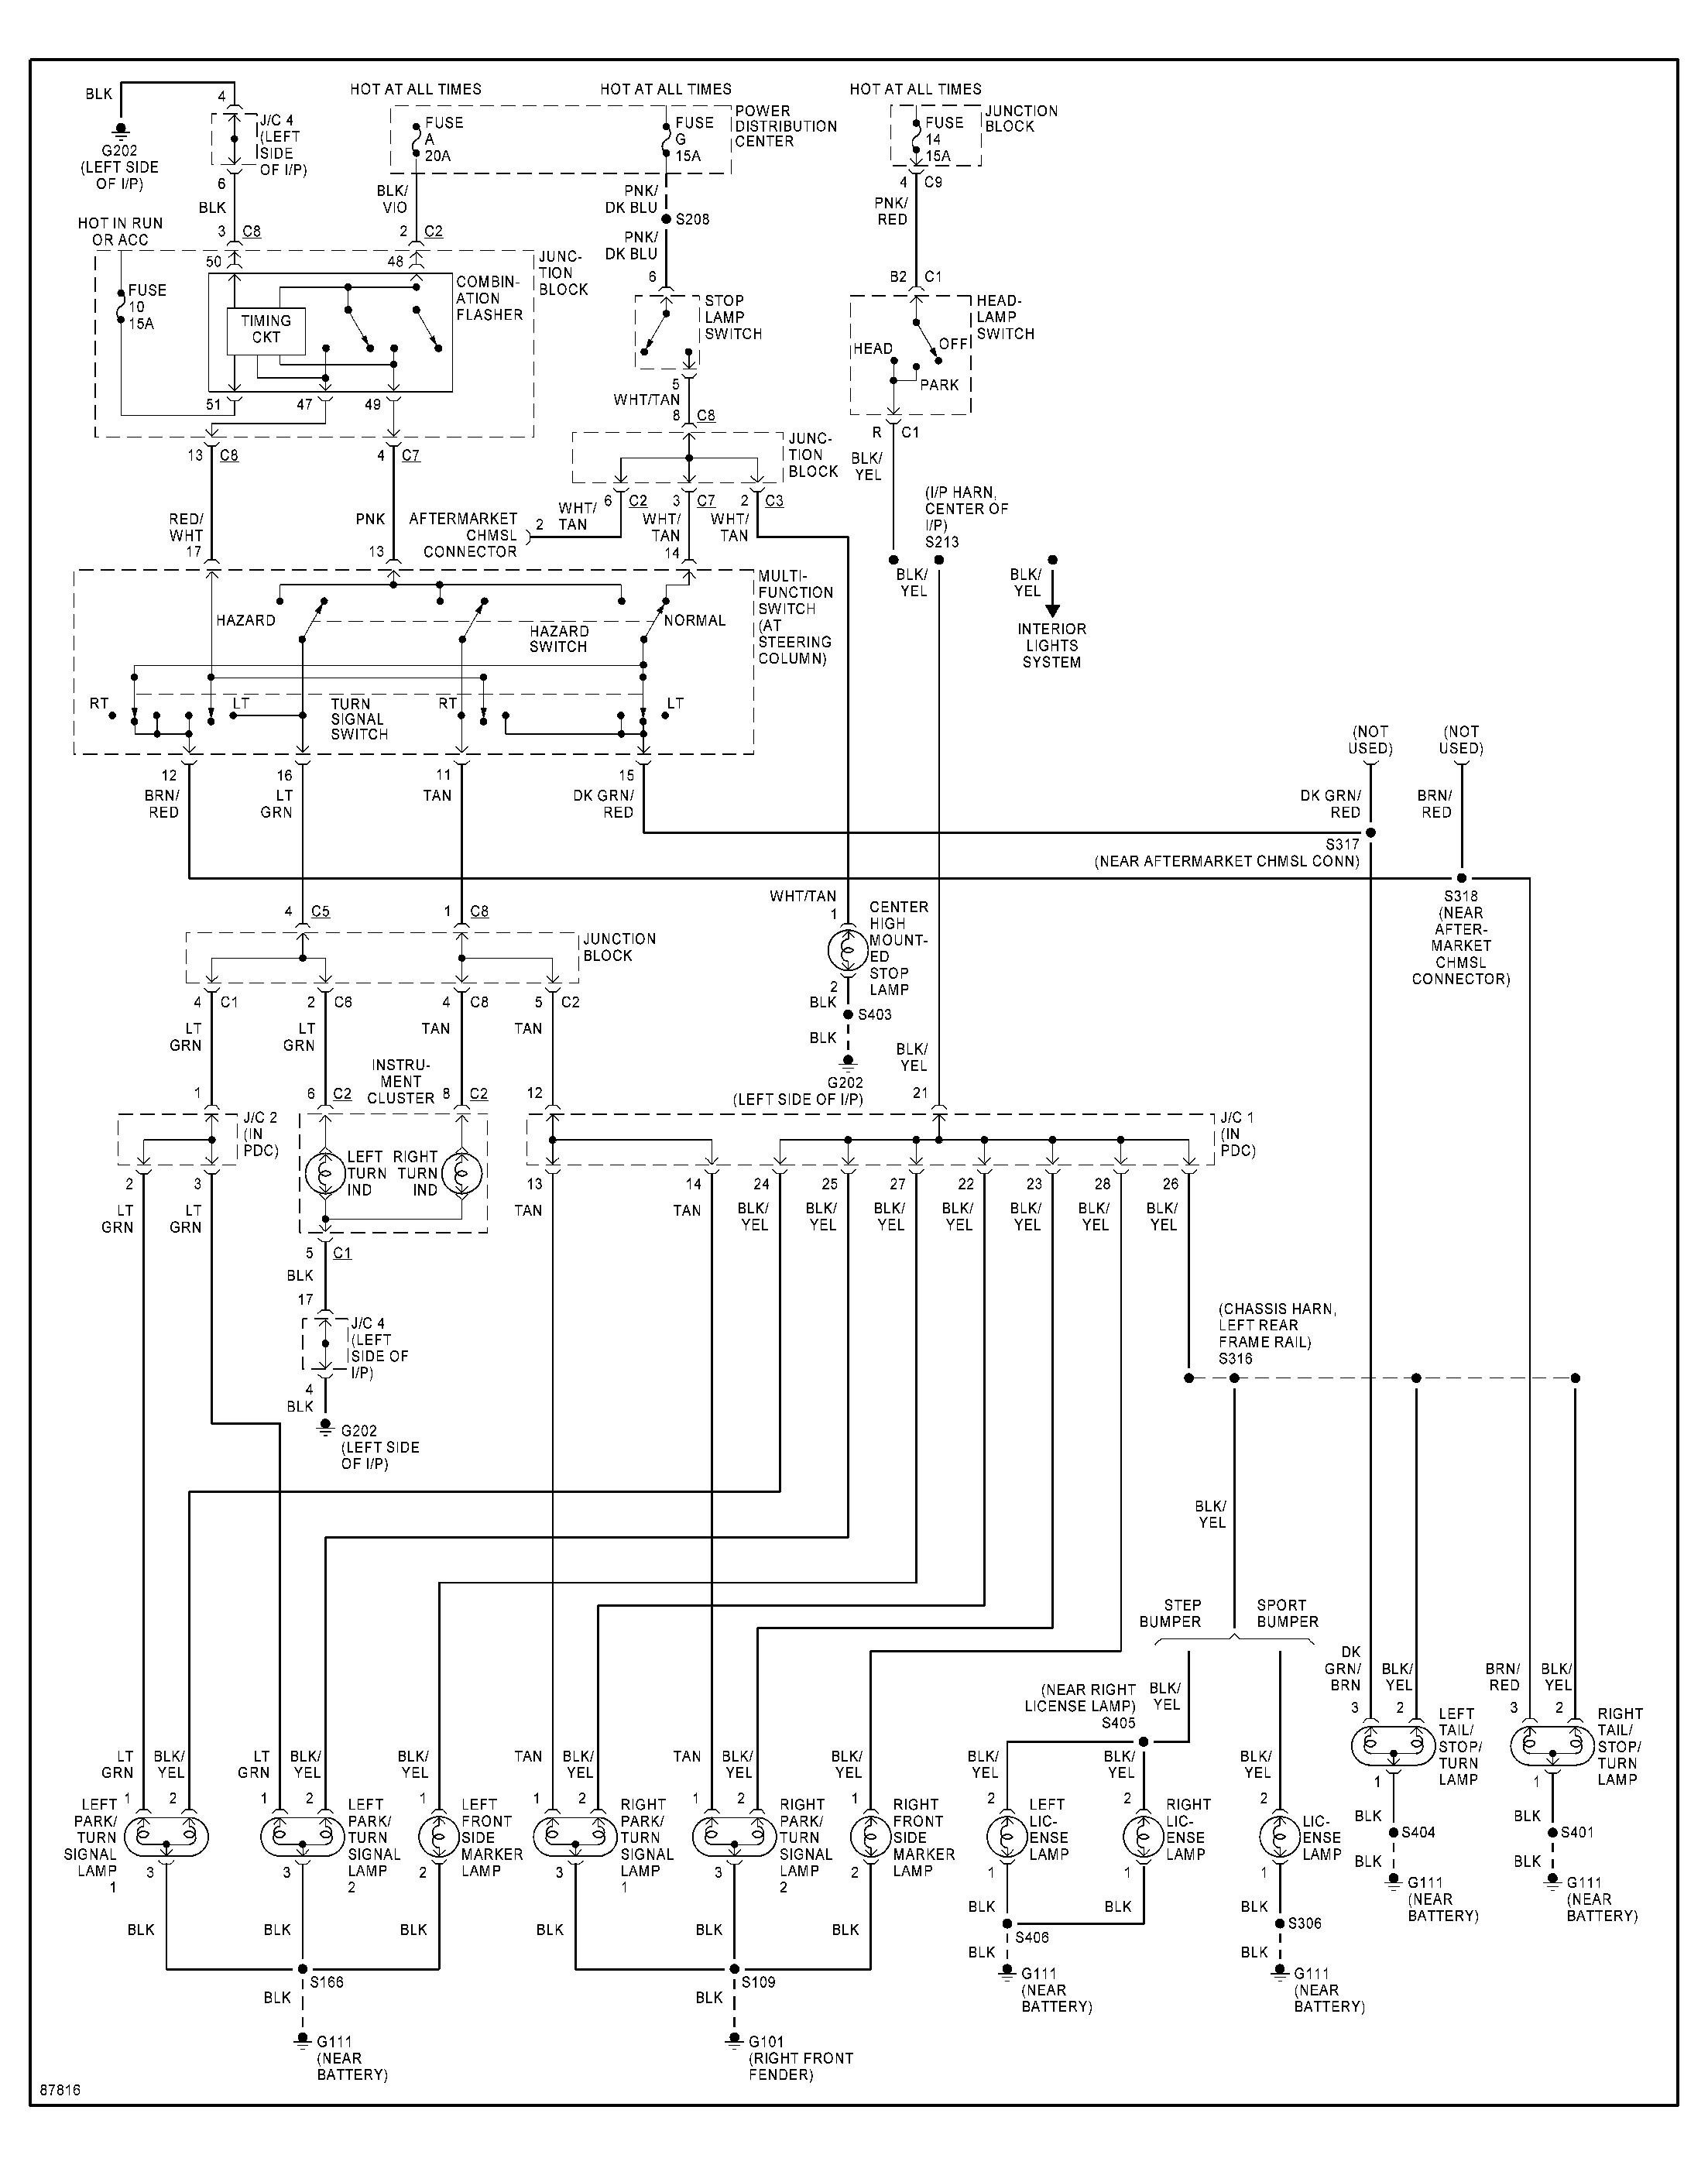 V8 Motor Diagram 1997 Chevy S10 Wiring Diagram Collection